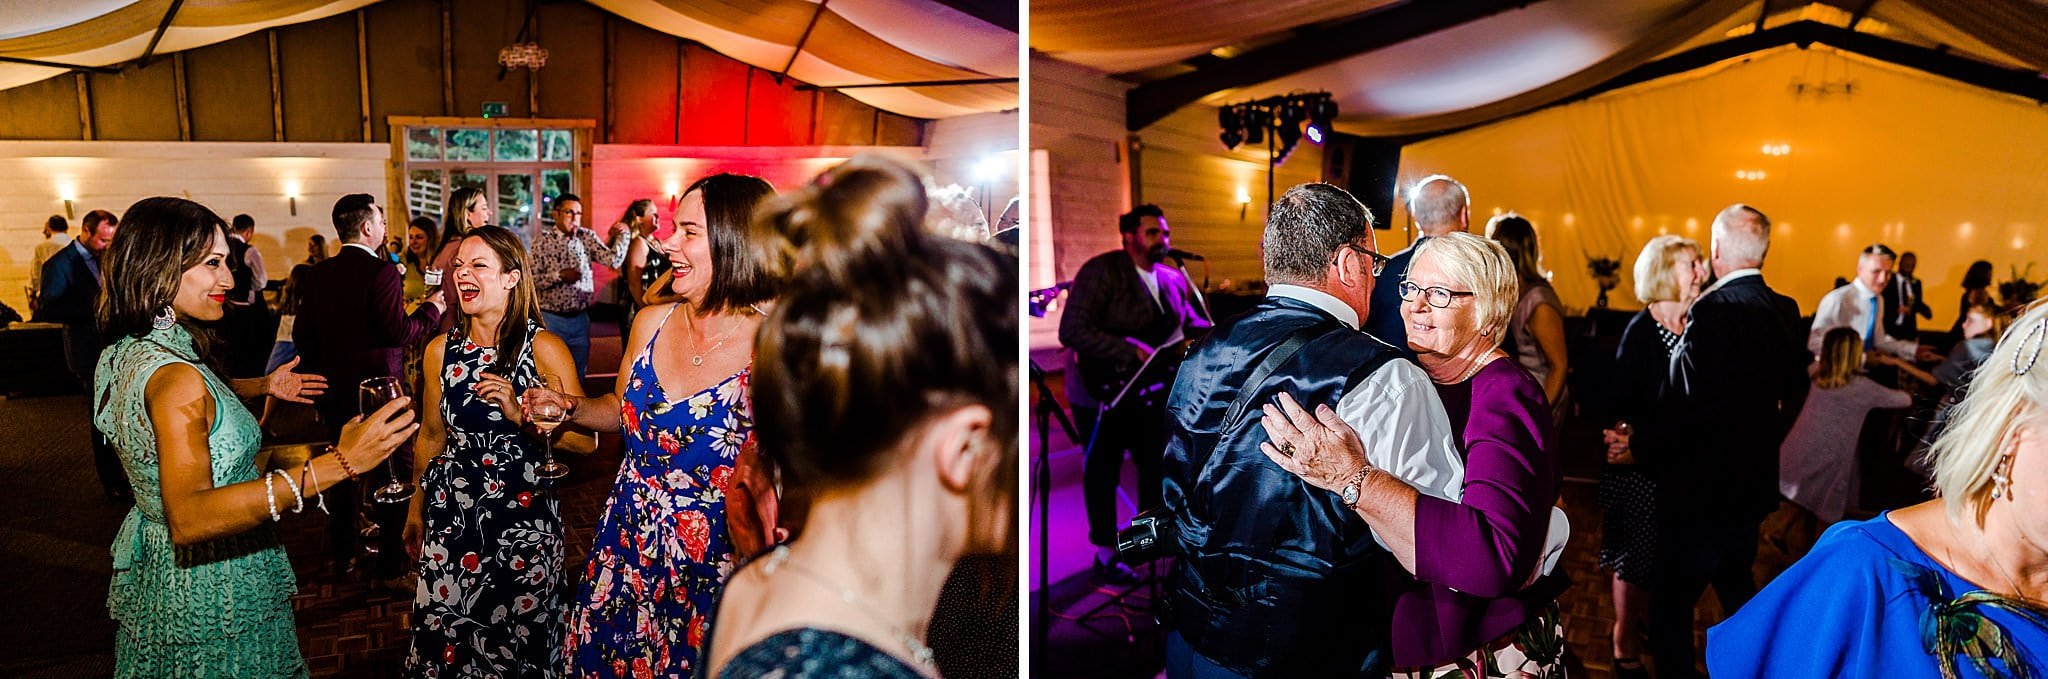 Wedding guests dancing at Newton House Barns